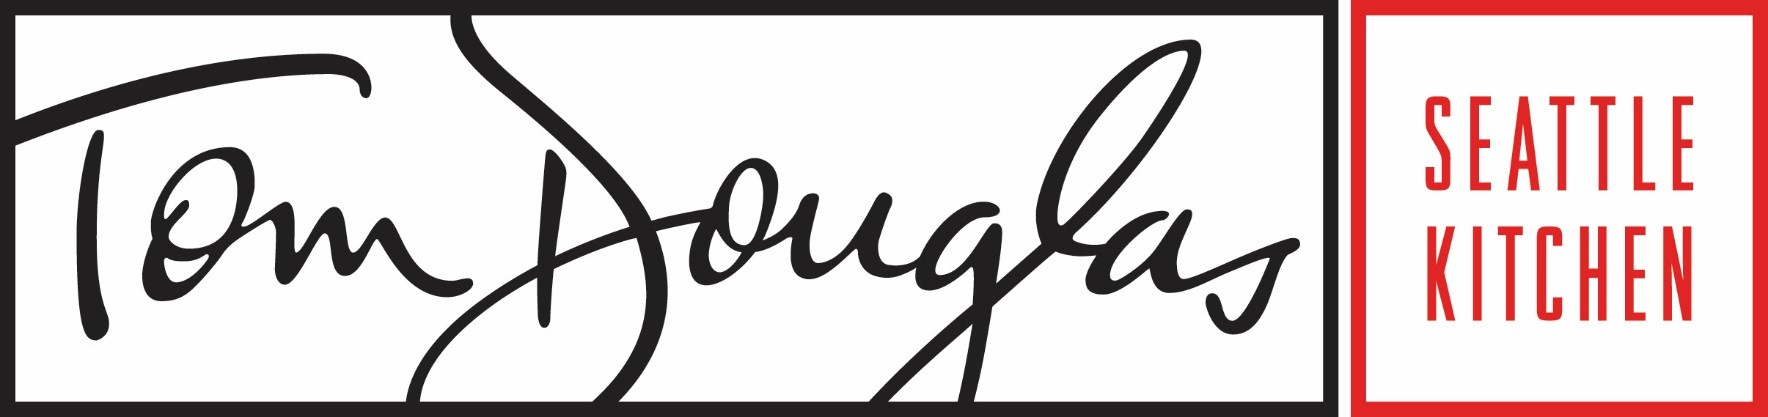 Tom Douglas logo